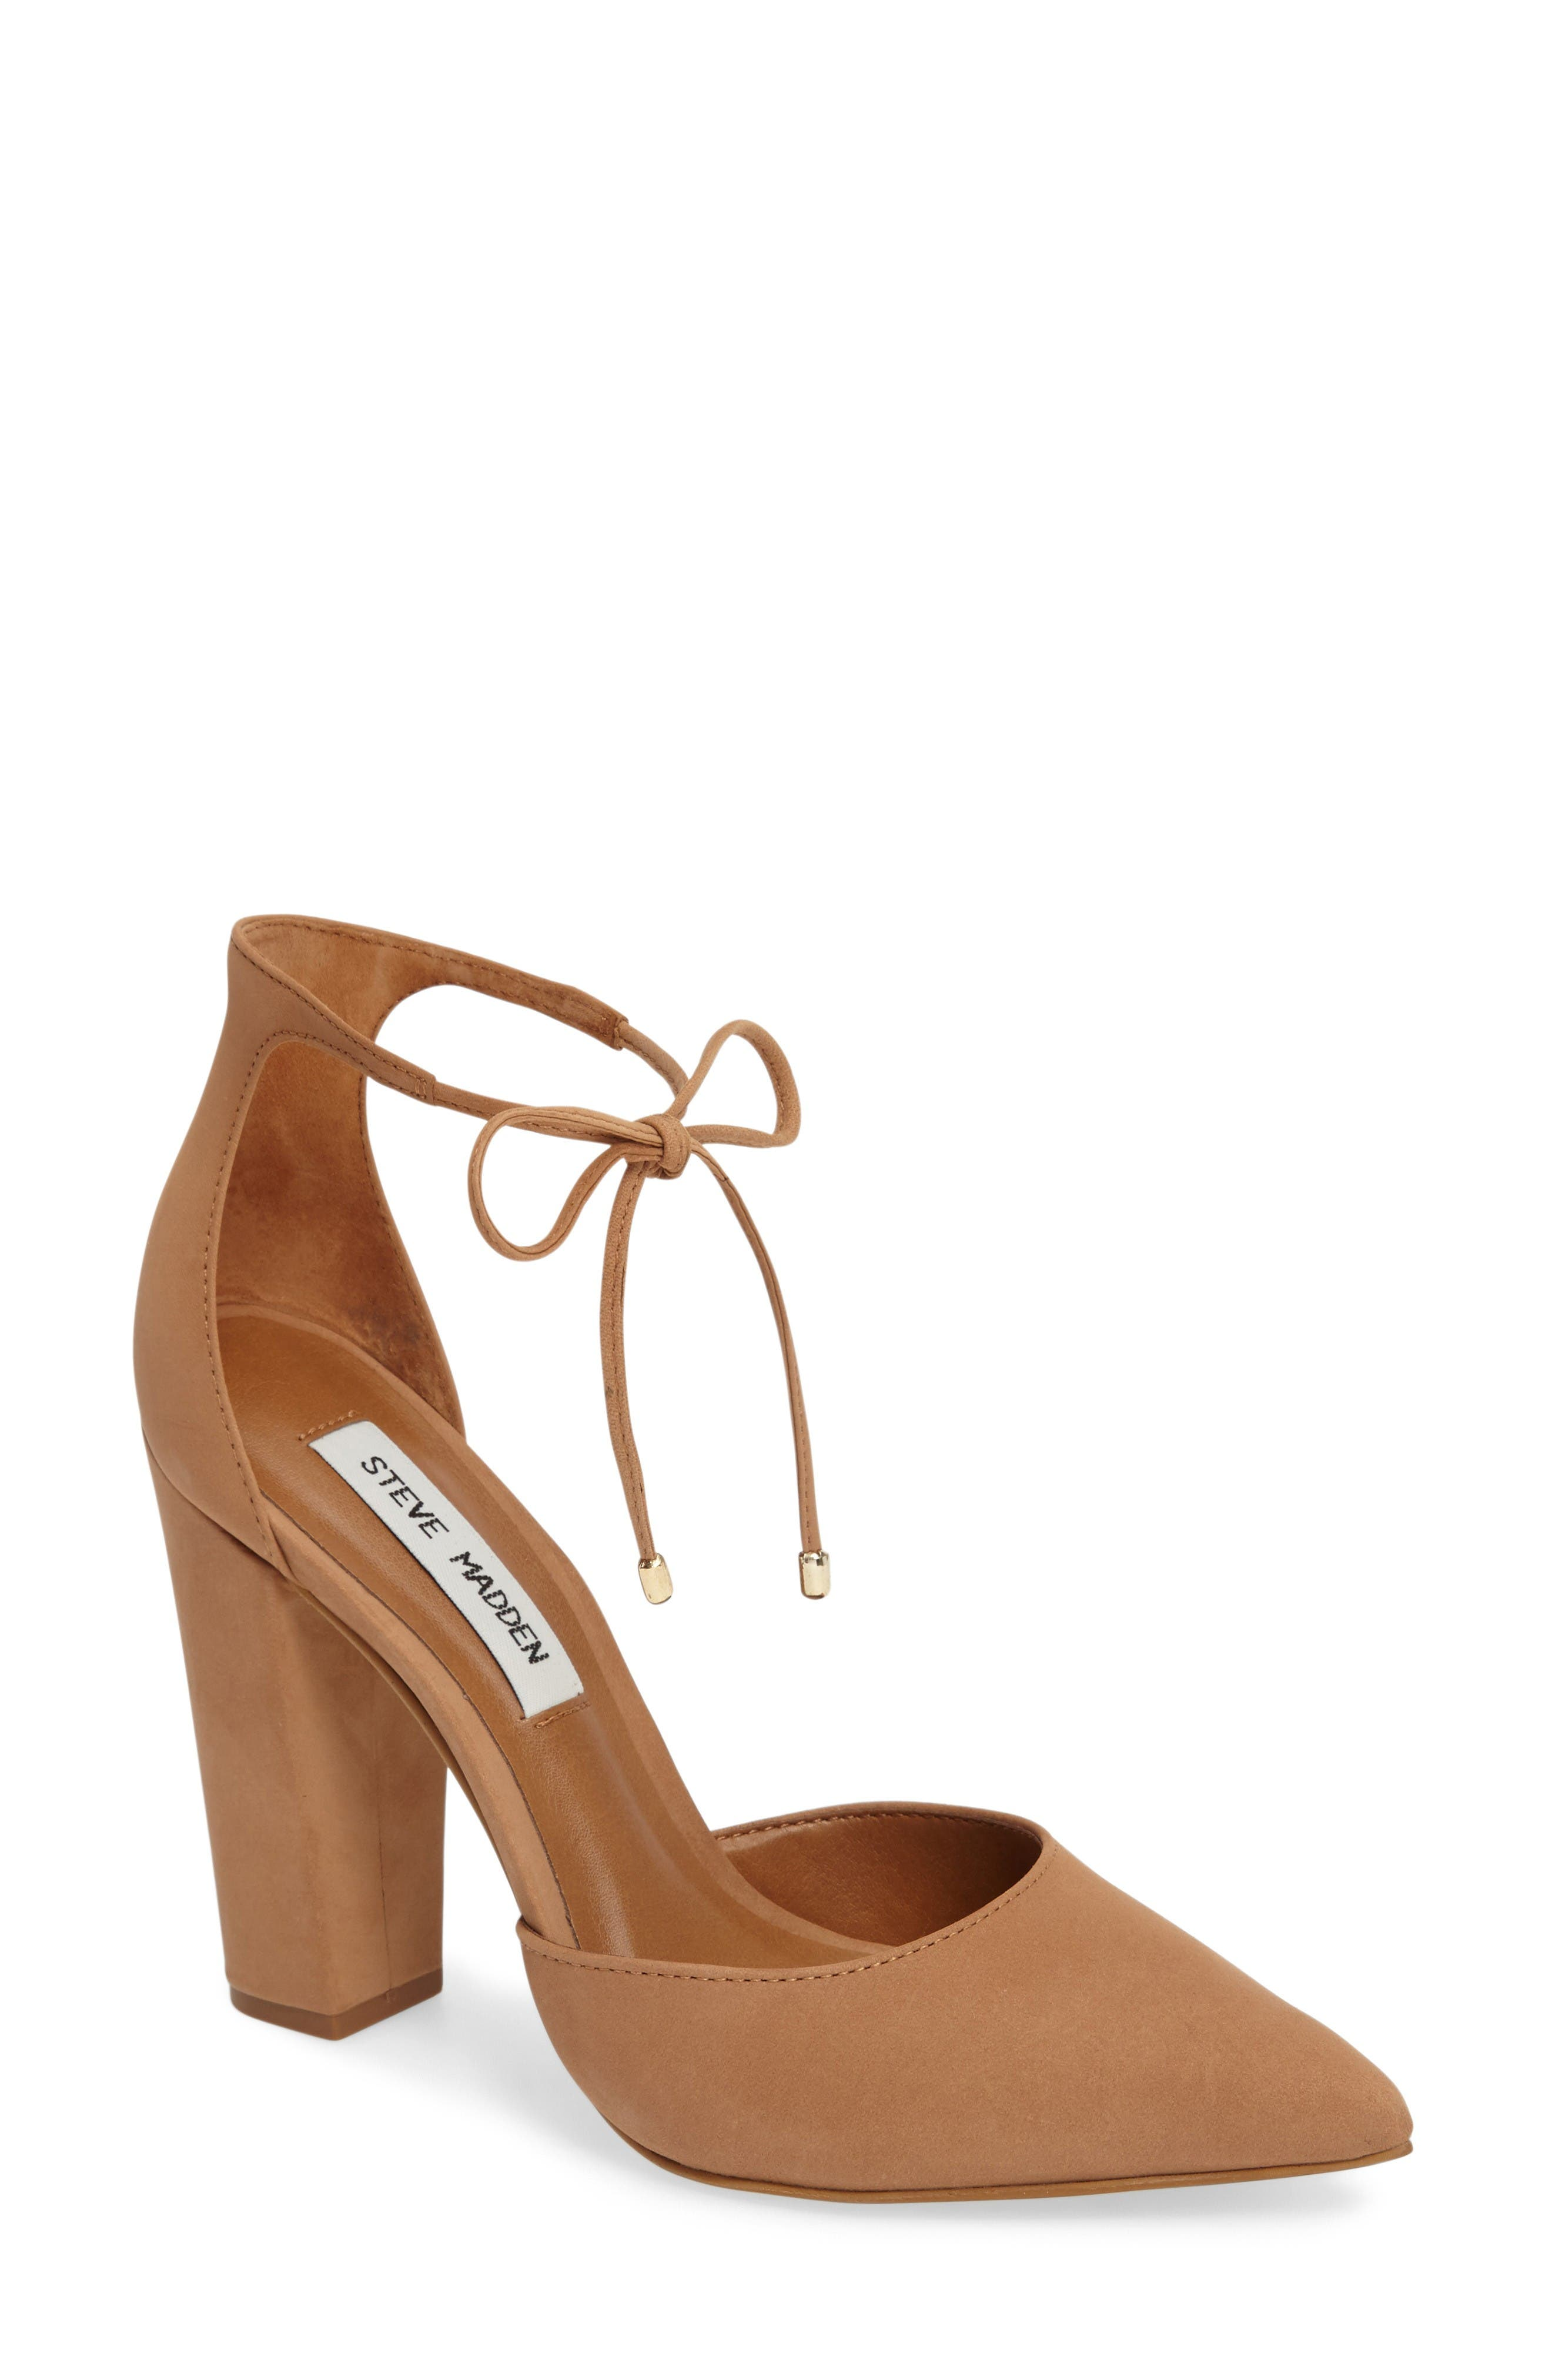 Pamperd Lace-Up Pump,                         Main,                         color, Tan Nubuck Leather